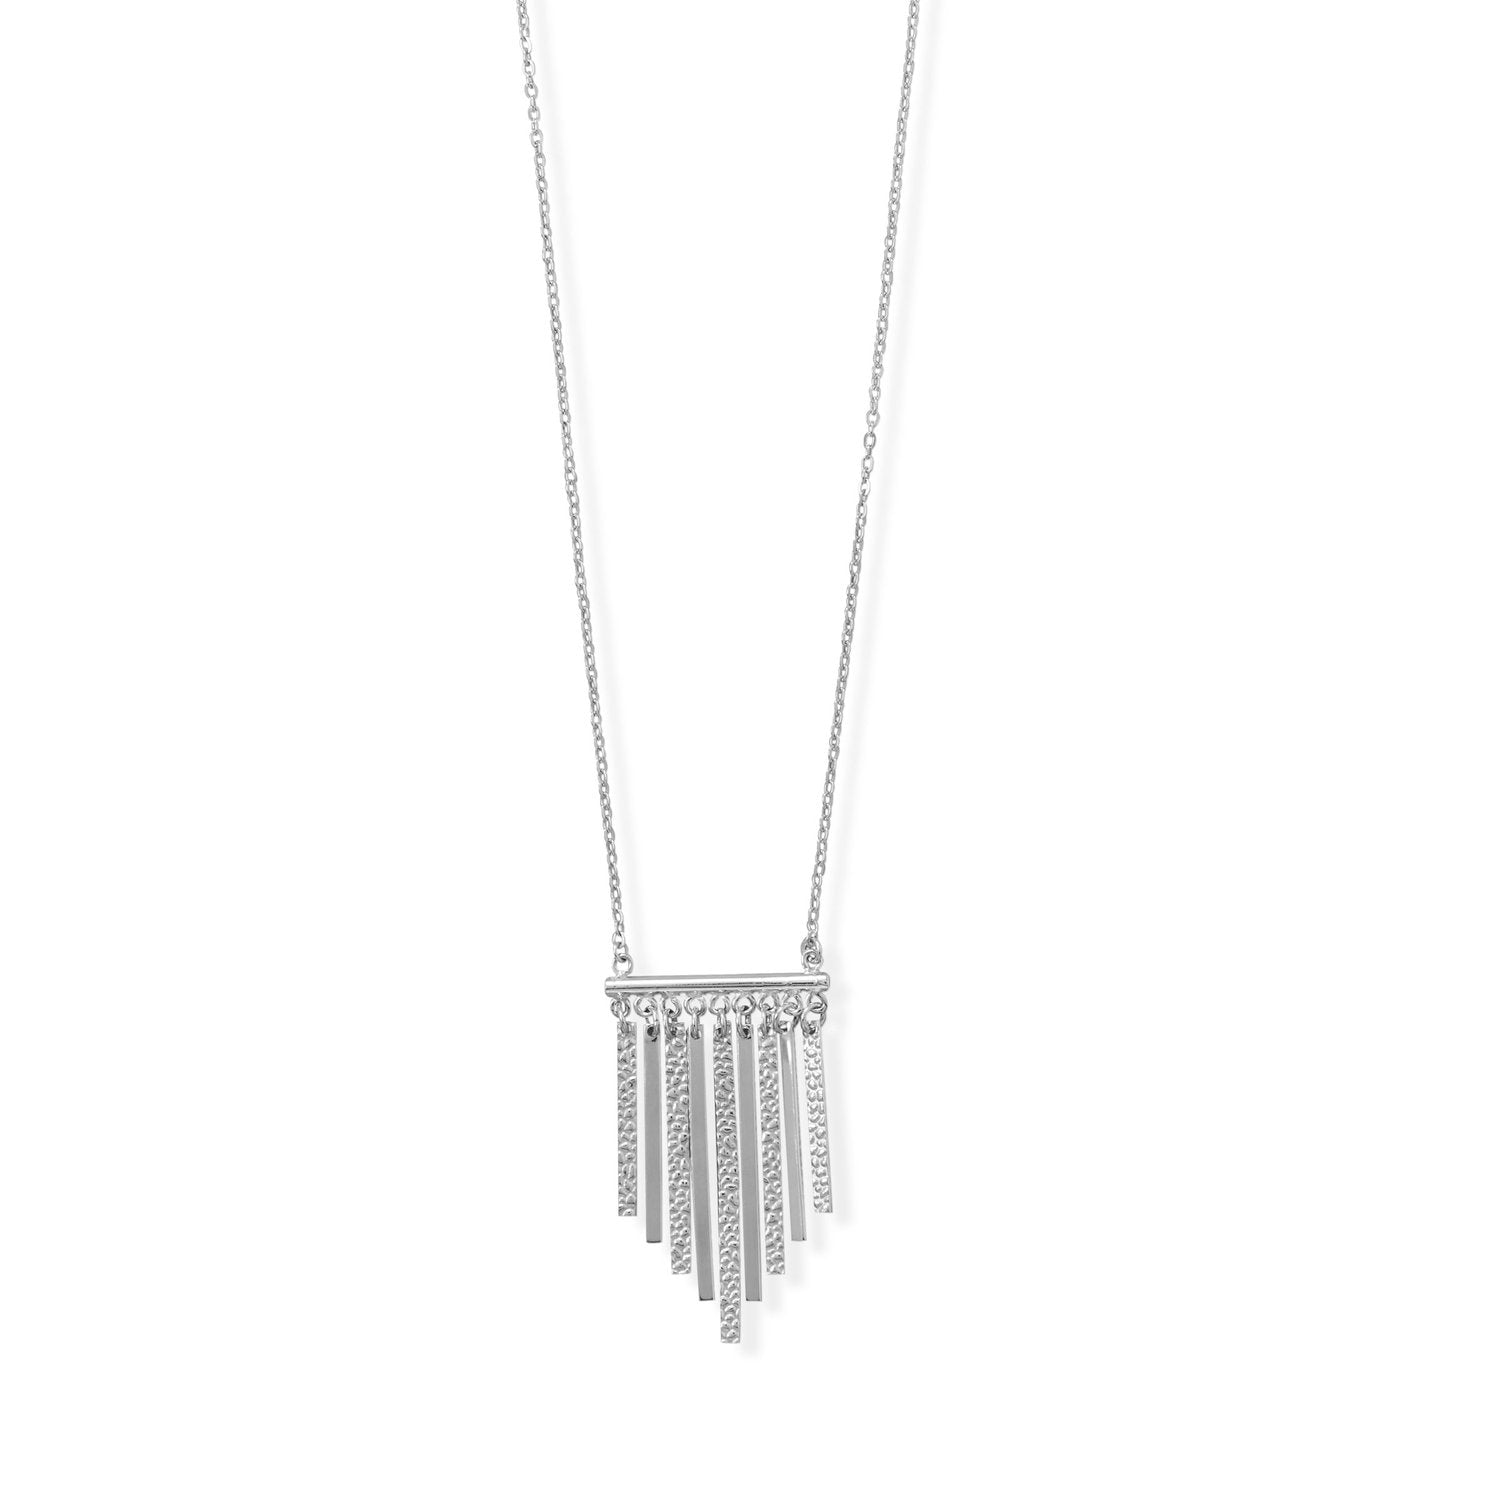 "A Daring Drop! 16""+2 Rhodium Plated Polished and Textured Bar Necklace"